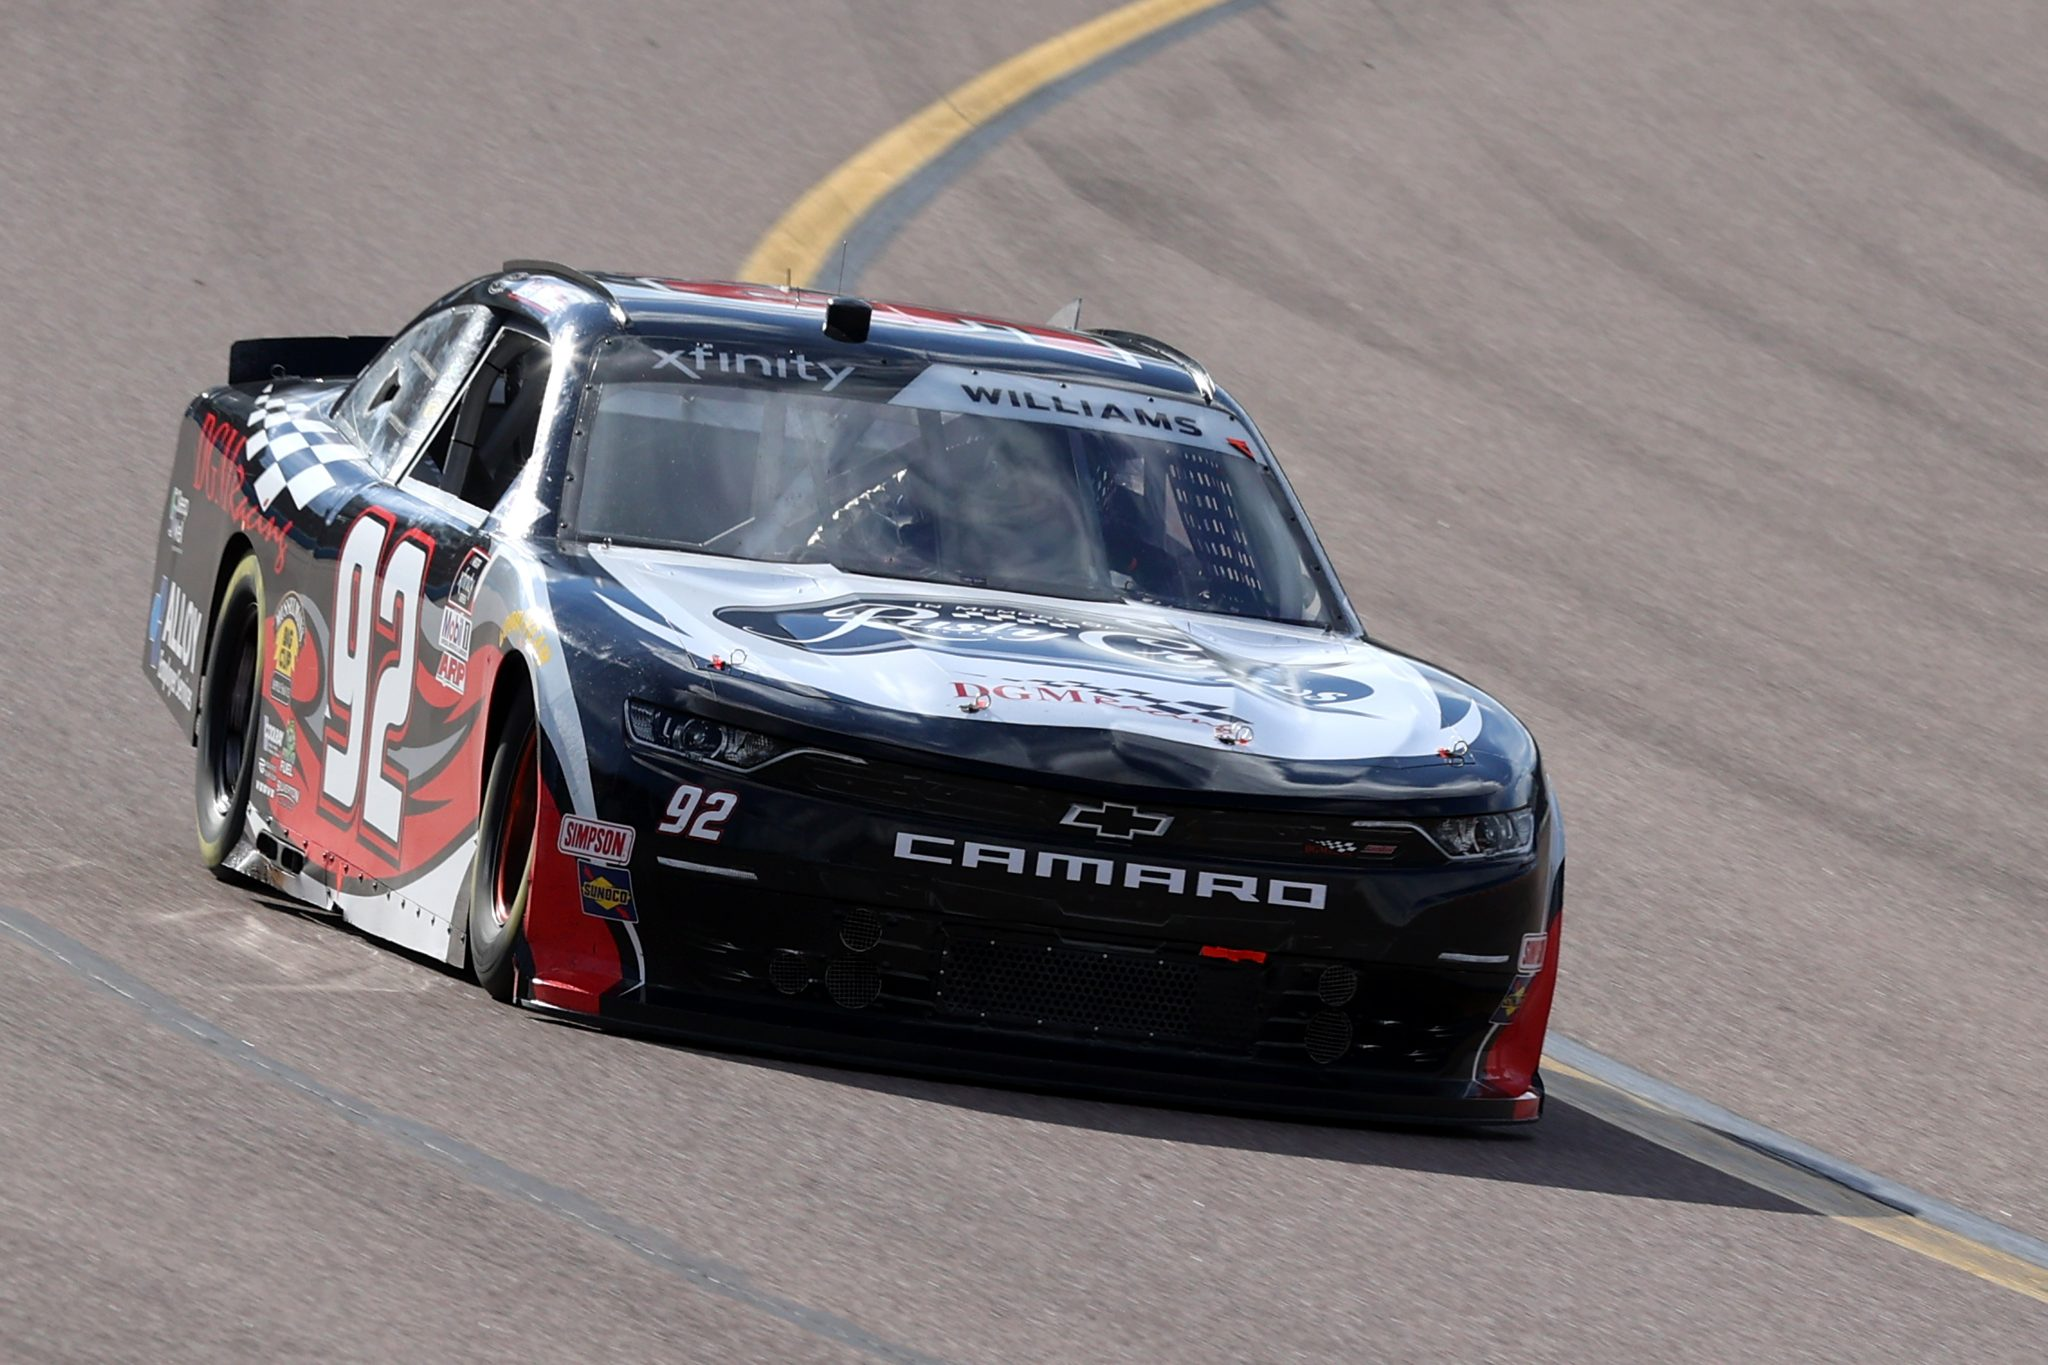 AVONDALE, ARIZONA - MARCH 13: Josh Williams, driver of the #92 DGM Racing Chevrolet, drives during the NASCAR Xfinity Series Call 811 Before You Dig 200 presented by Arizona 811 at Phoenix Raceway on March 13, 2021 in Avondale, Arizona. (Photo by Abbie Parr/Getty Images) | Getty Images